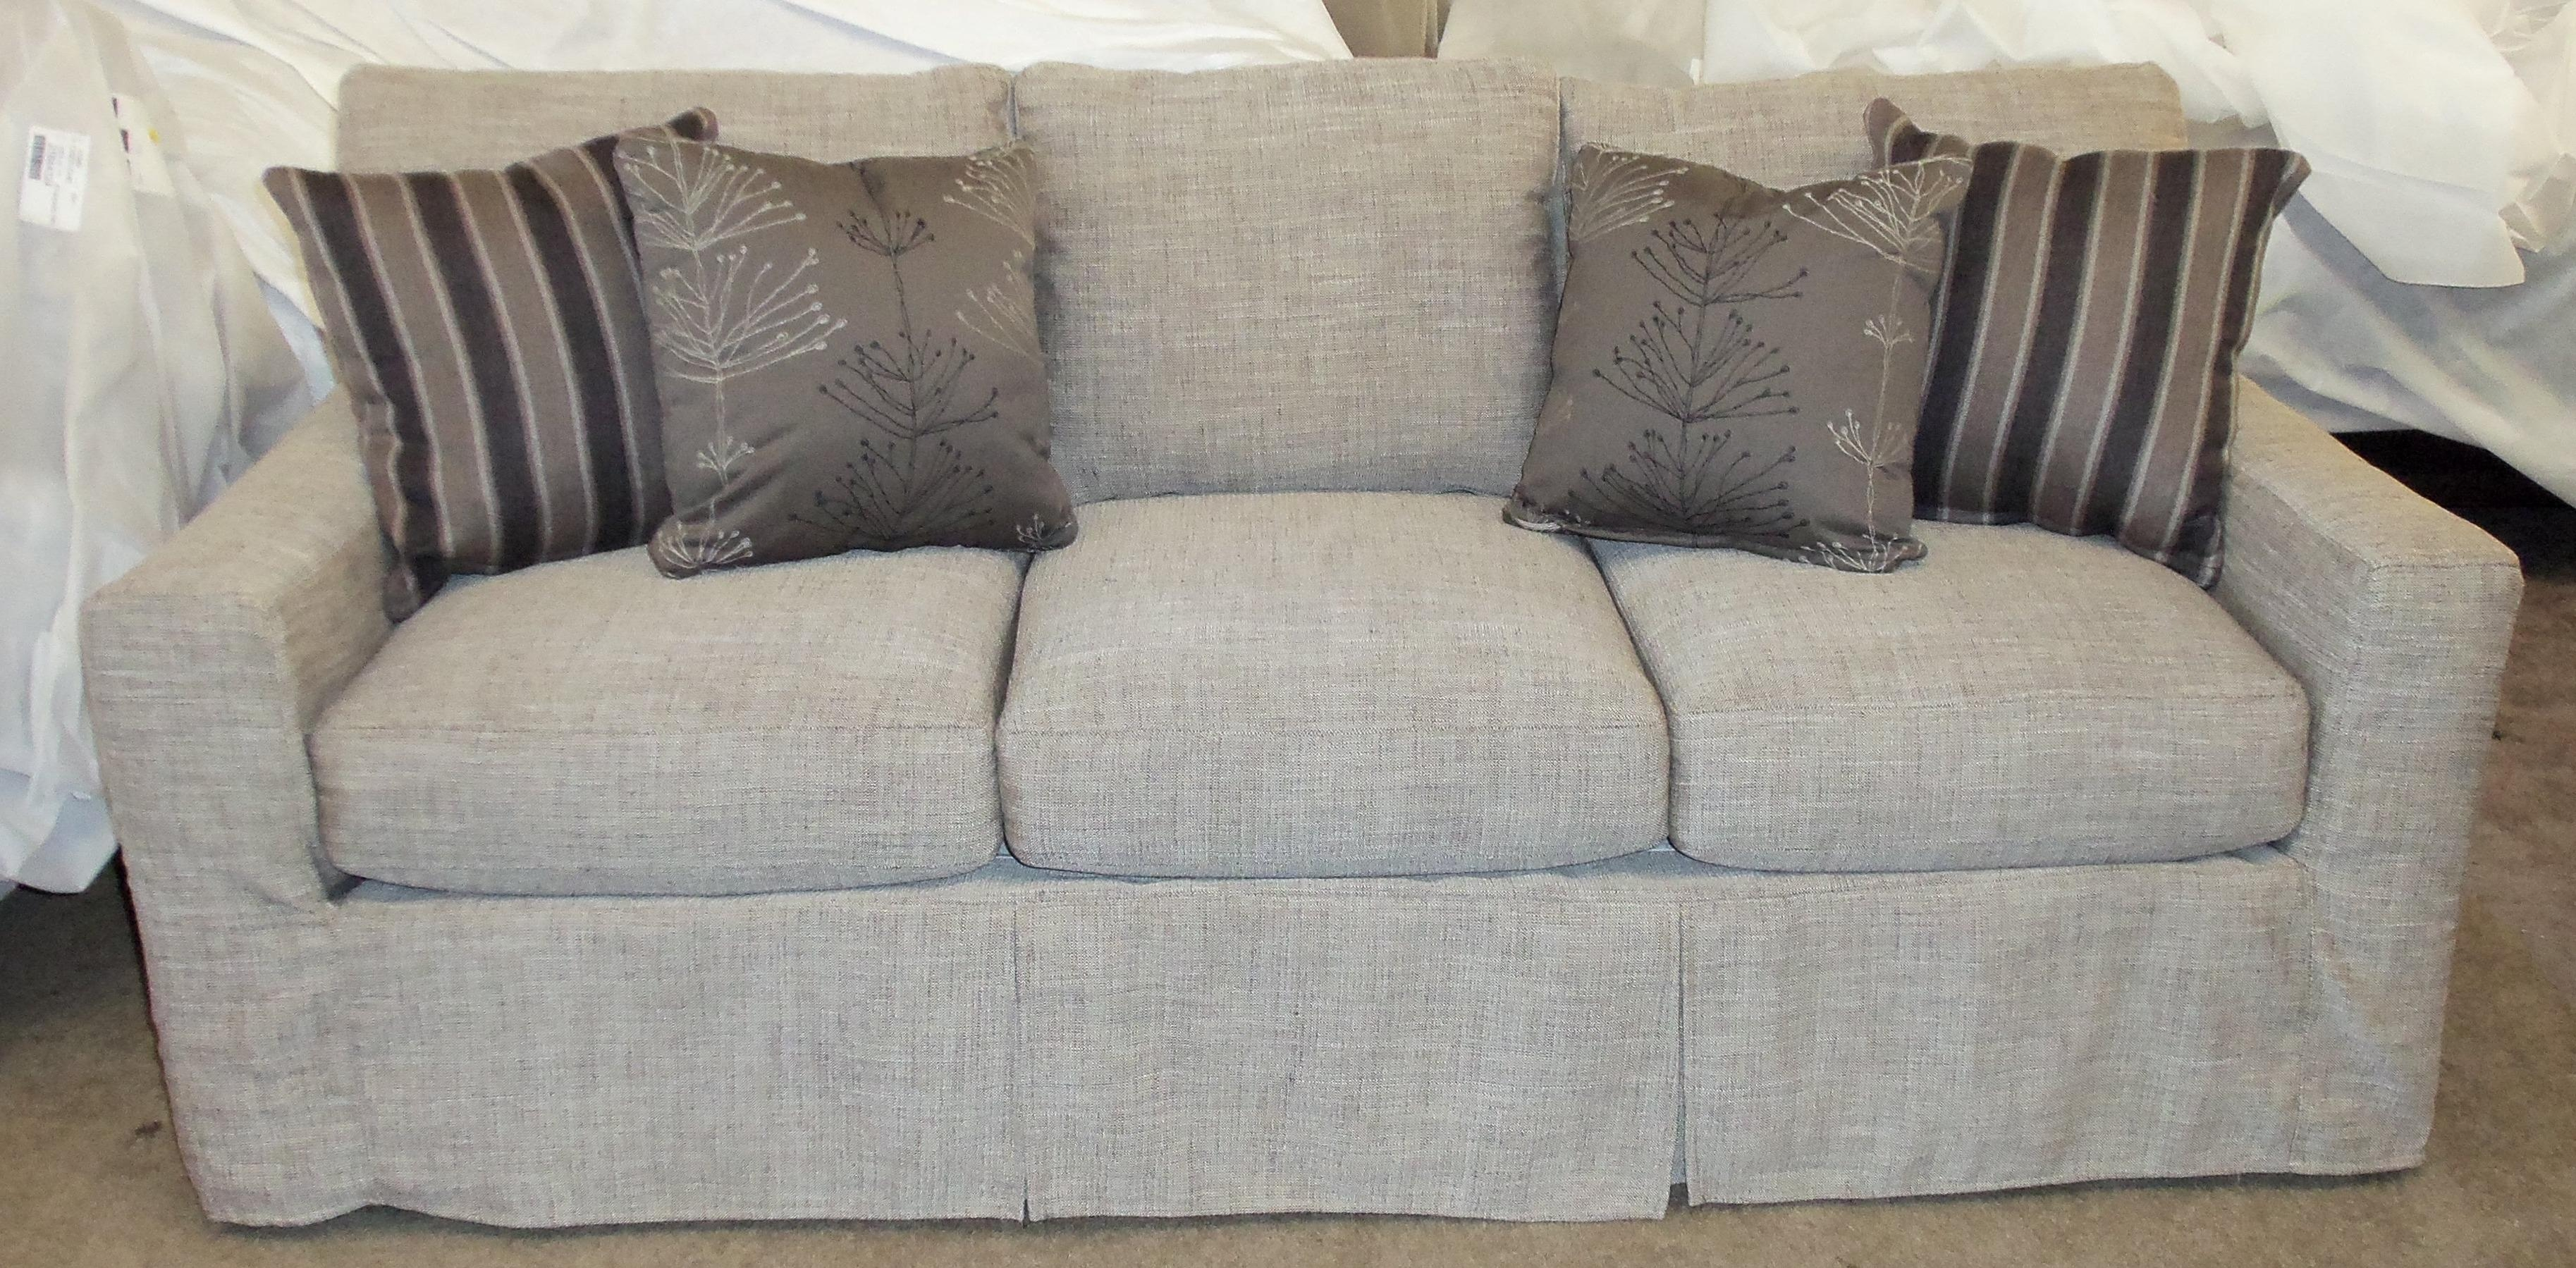 Furniture: Slipcovers For Couch | Sofa Cushion Covers | Regarding Slip Covers For Love Seats (Image 9 of 20)